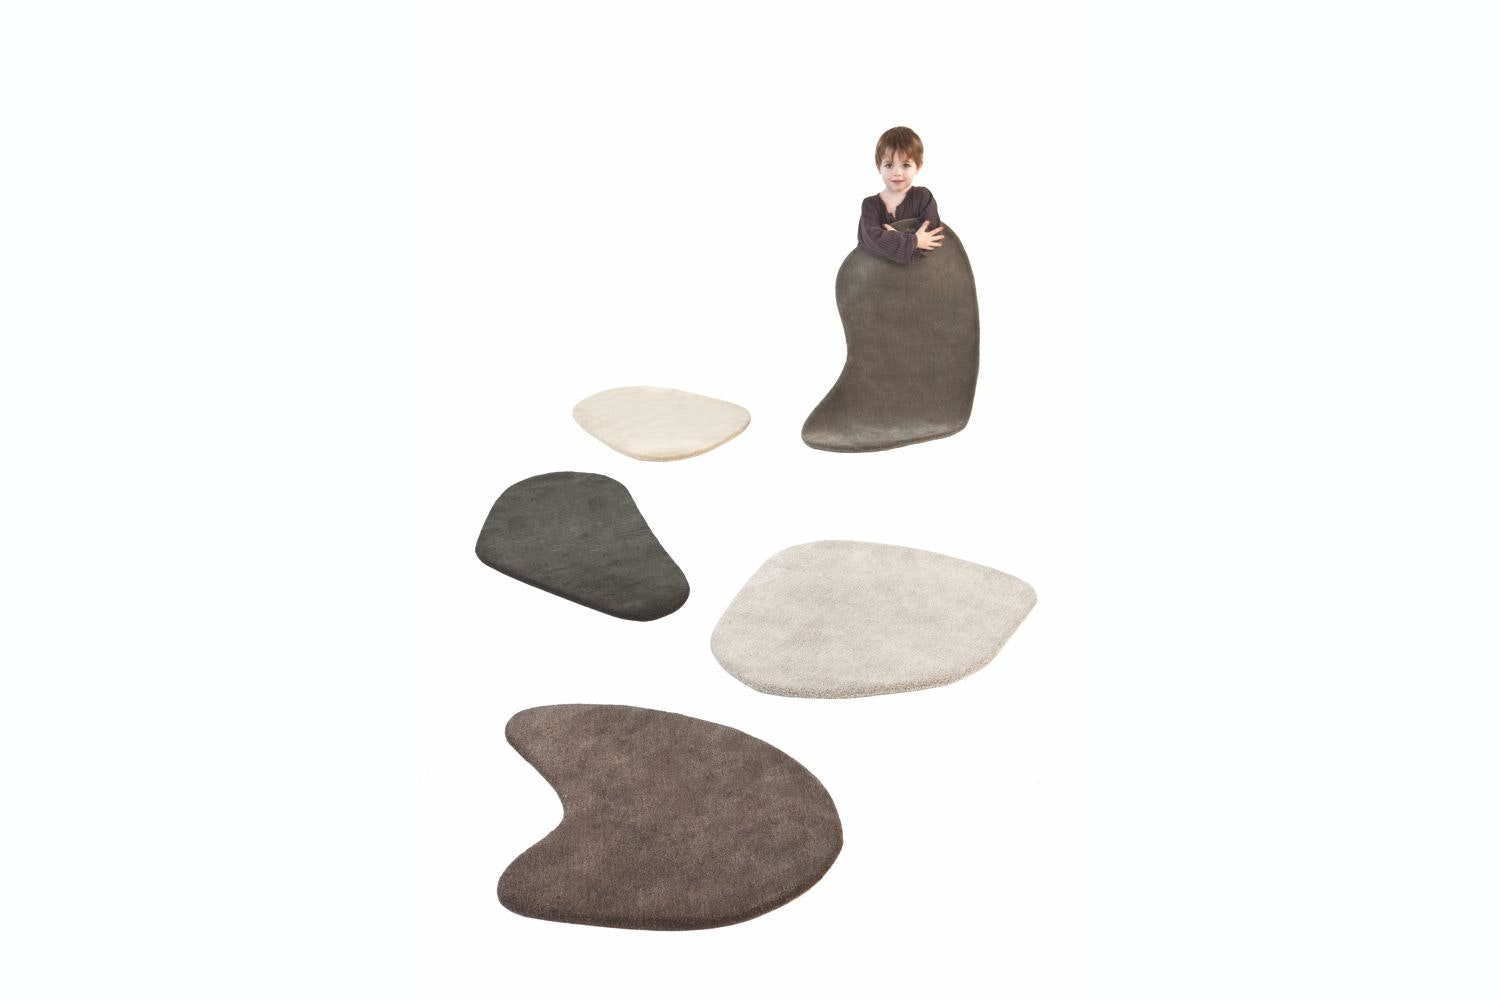 Stone-Wool Little Stones by Diego Fortunato for Nanimarquina